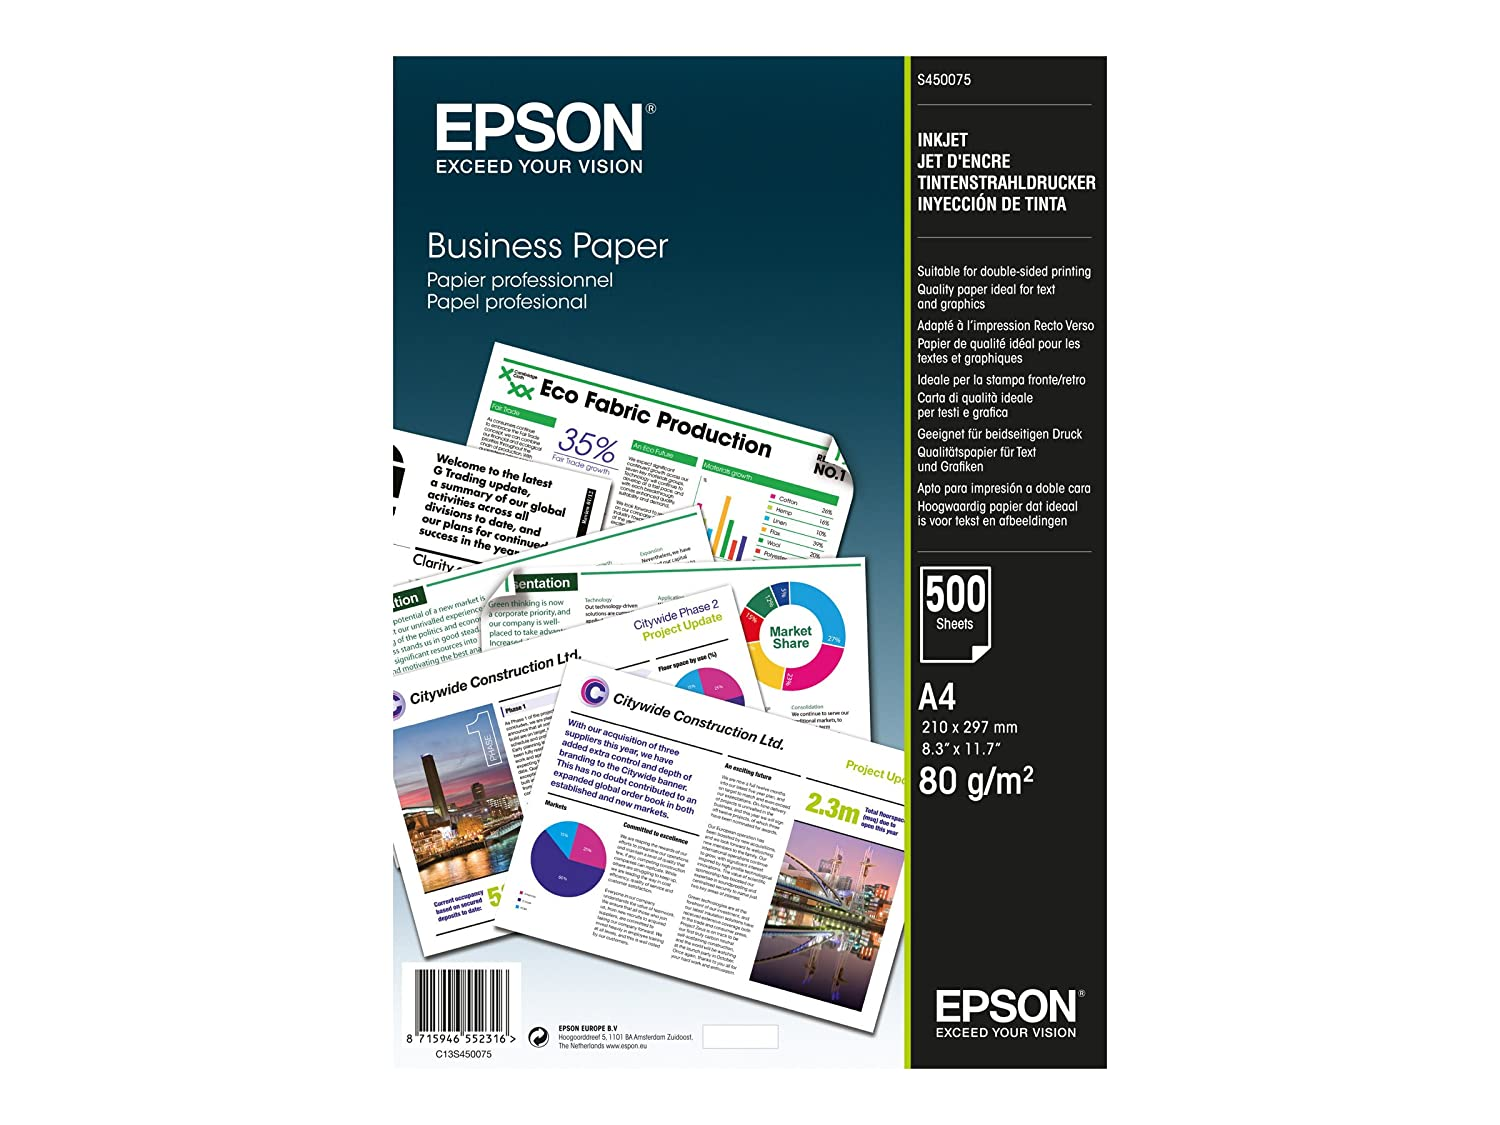 Epson A4 Business Plain Paper Pack Of 500 Office Tinta 680 Colour Products